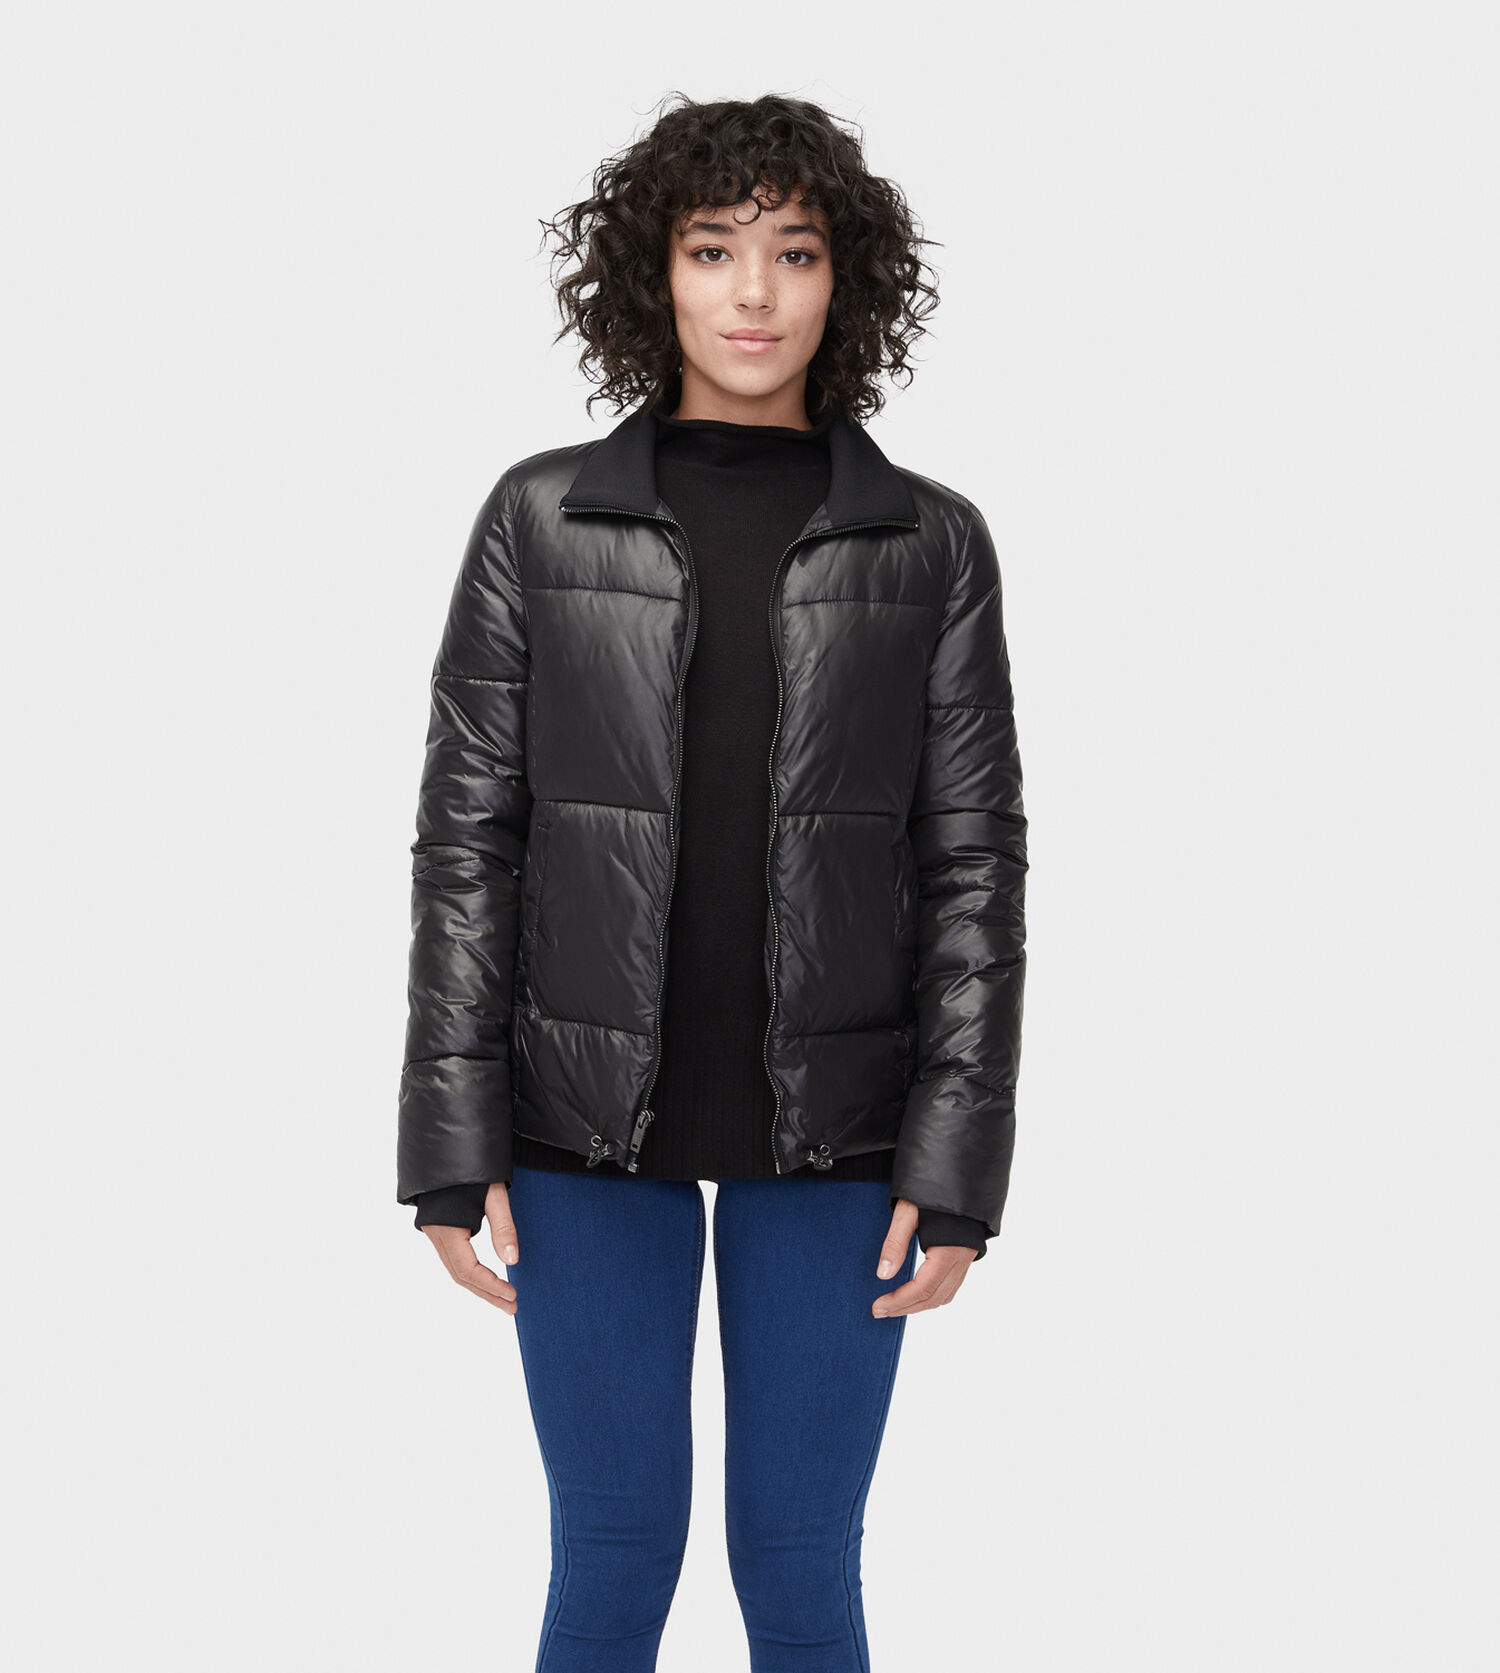 502819b3aa Zoom Izzie Puffer Jacket Nylon - Image 1 of 6